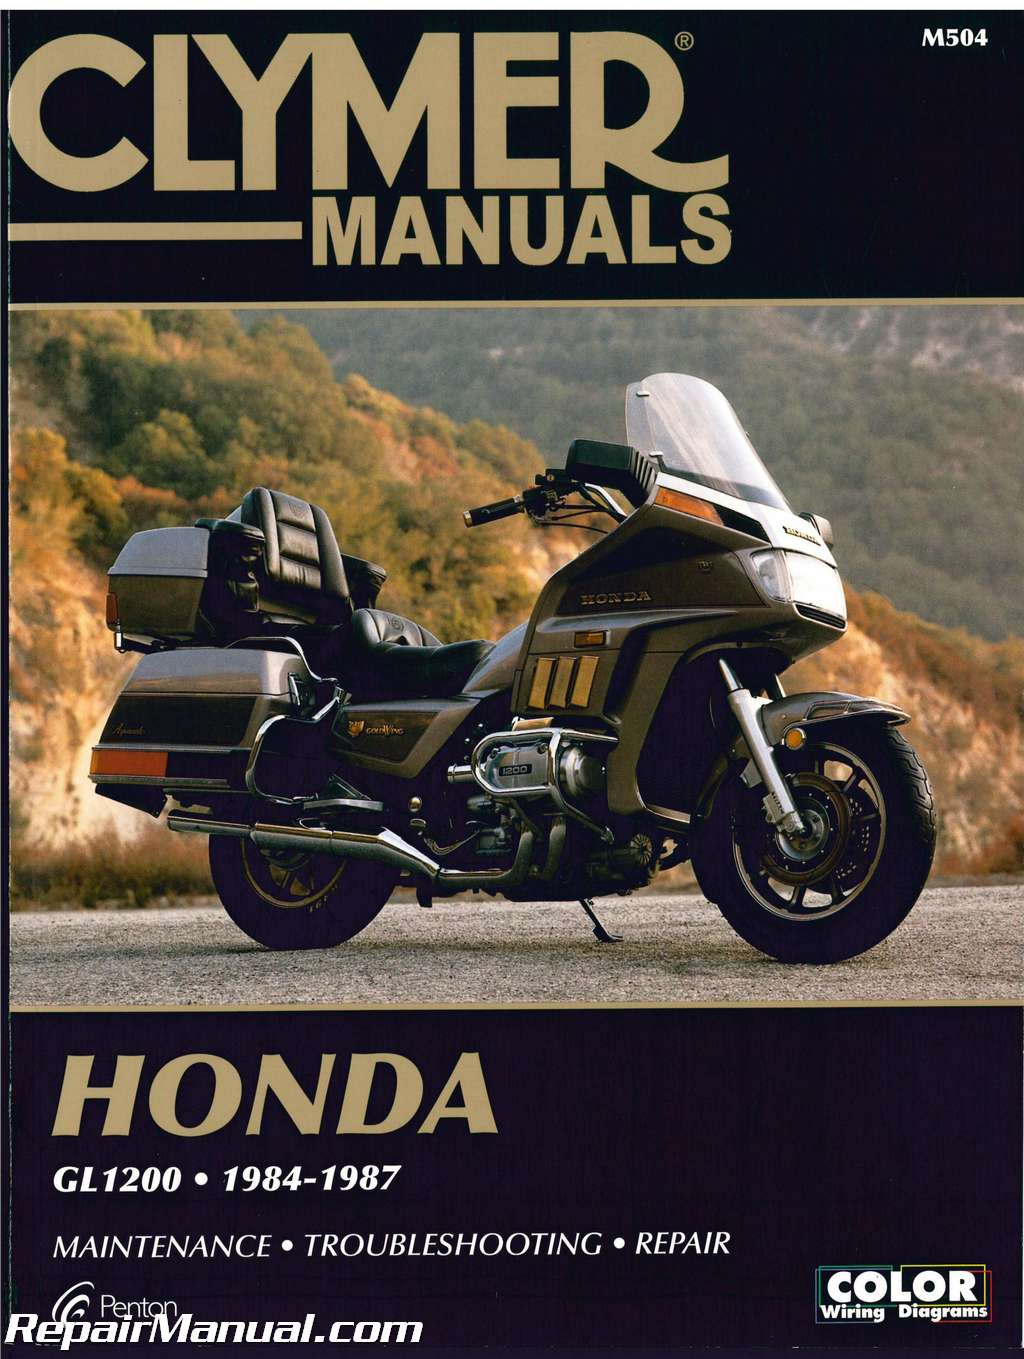 honda gl1200 motorcycle wiring diagrams honda gl1200 gold wing motorcycle repair manual 1984 1987 clymer  motorcycle repair manual 1984 1987